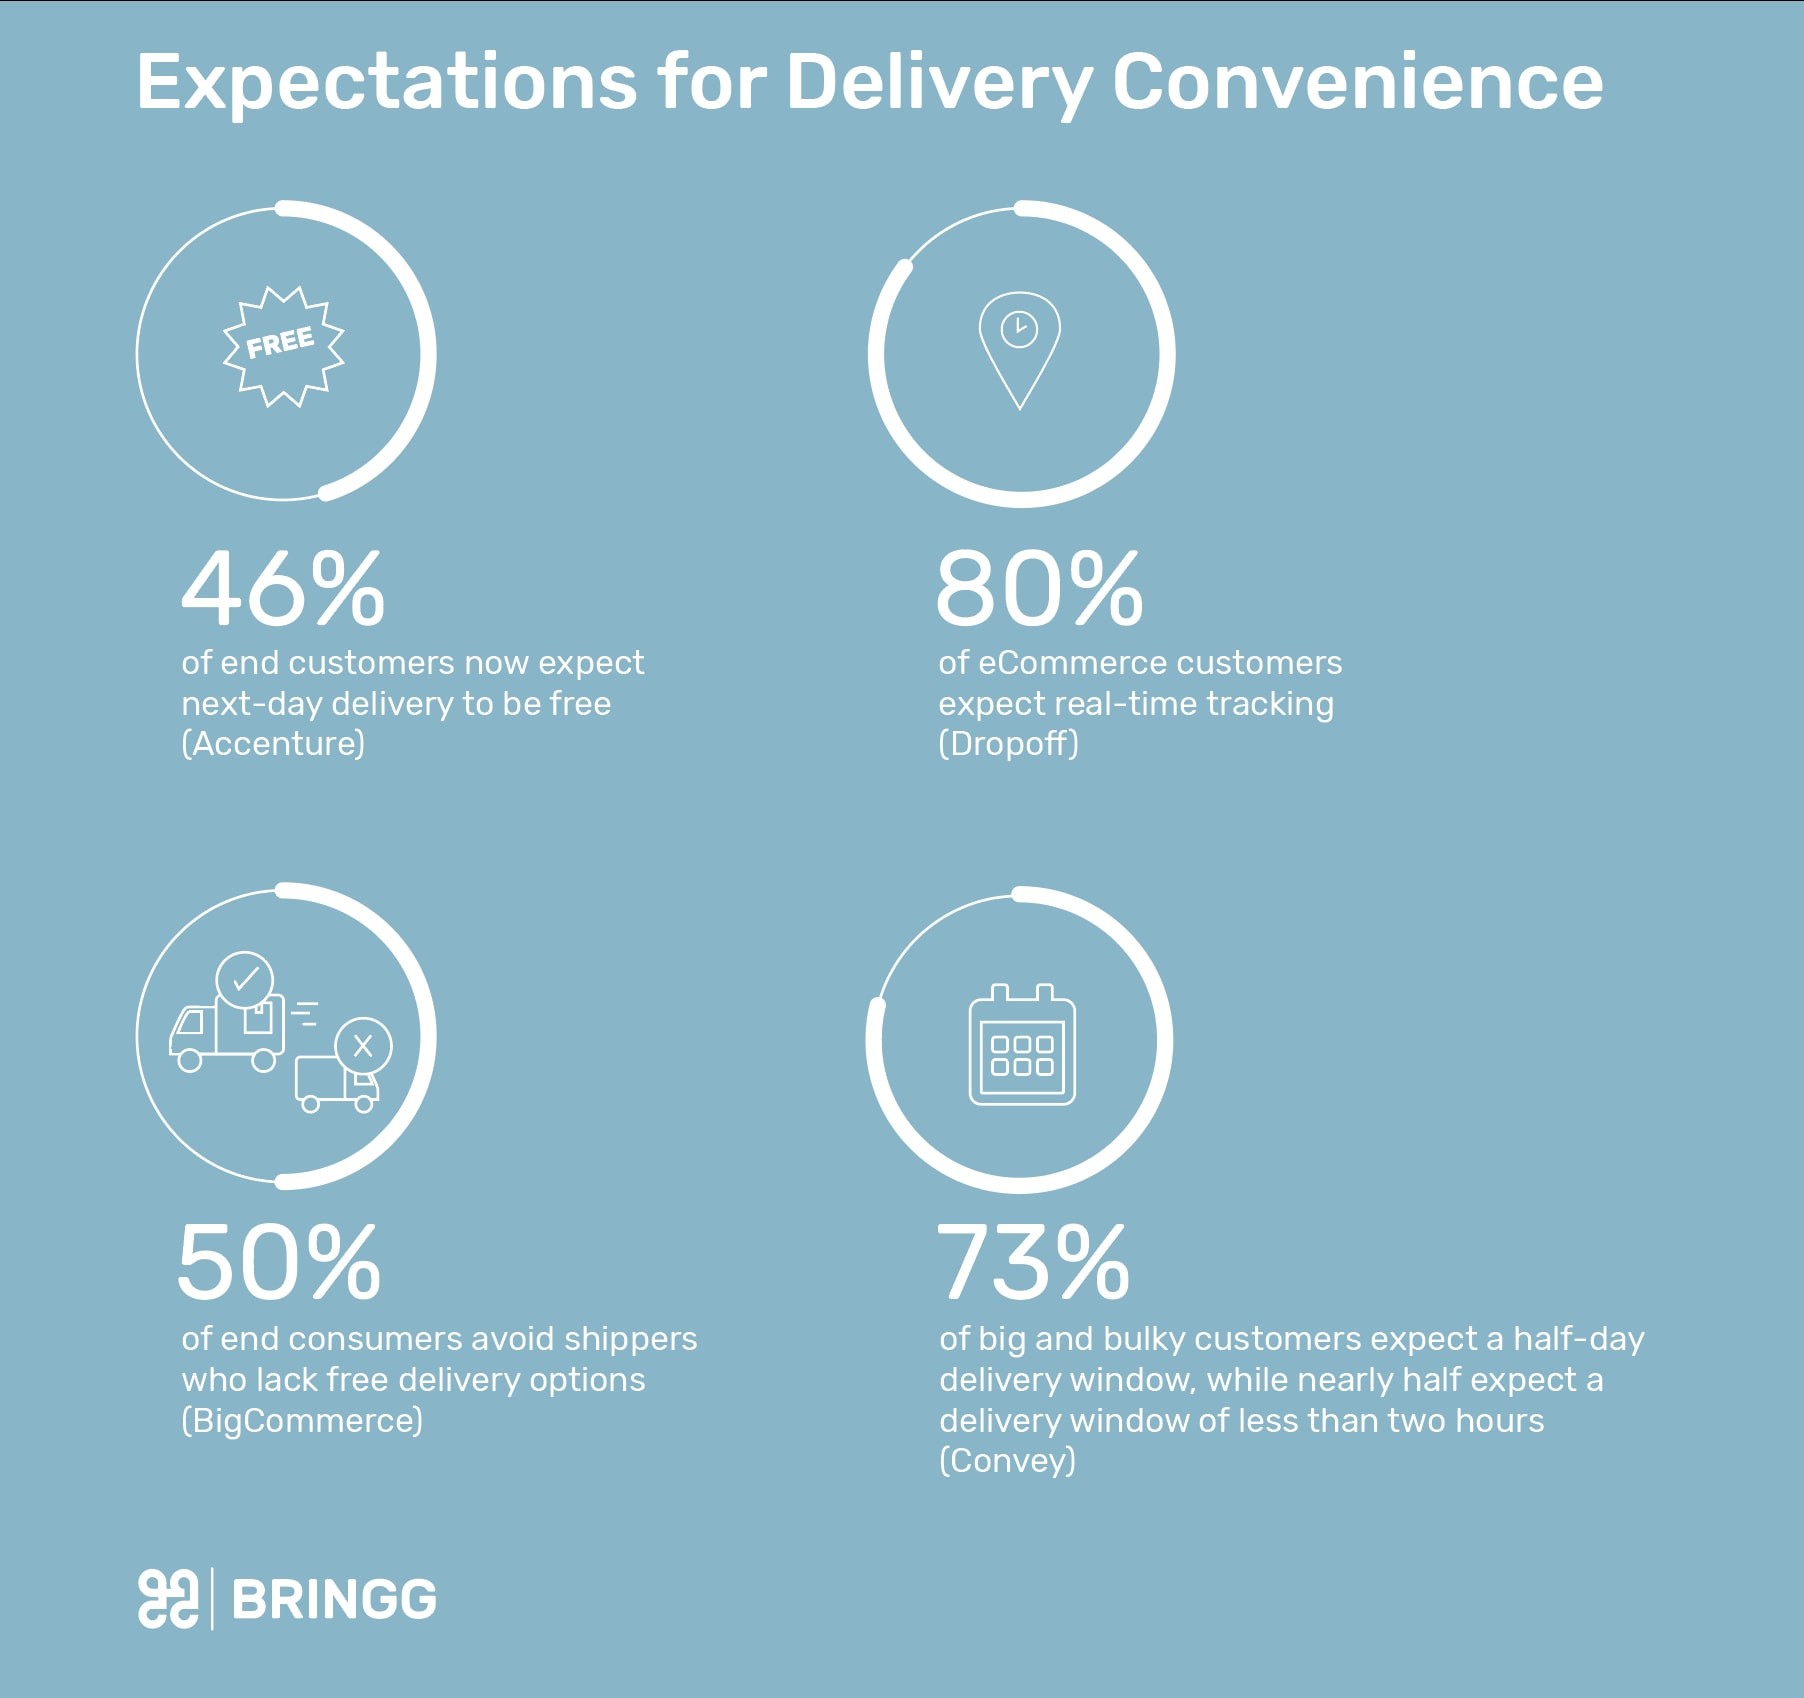 Expectations for Delivery Convenience